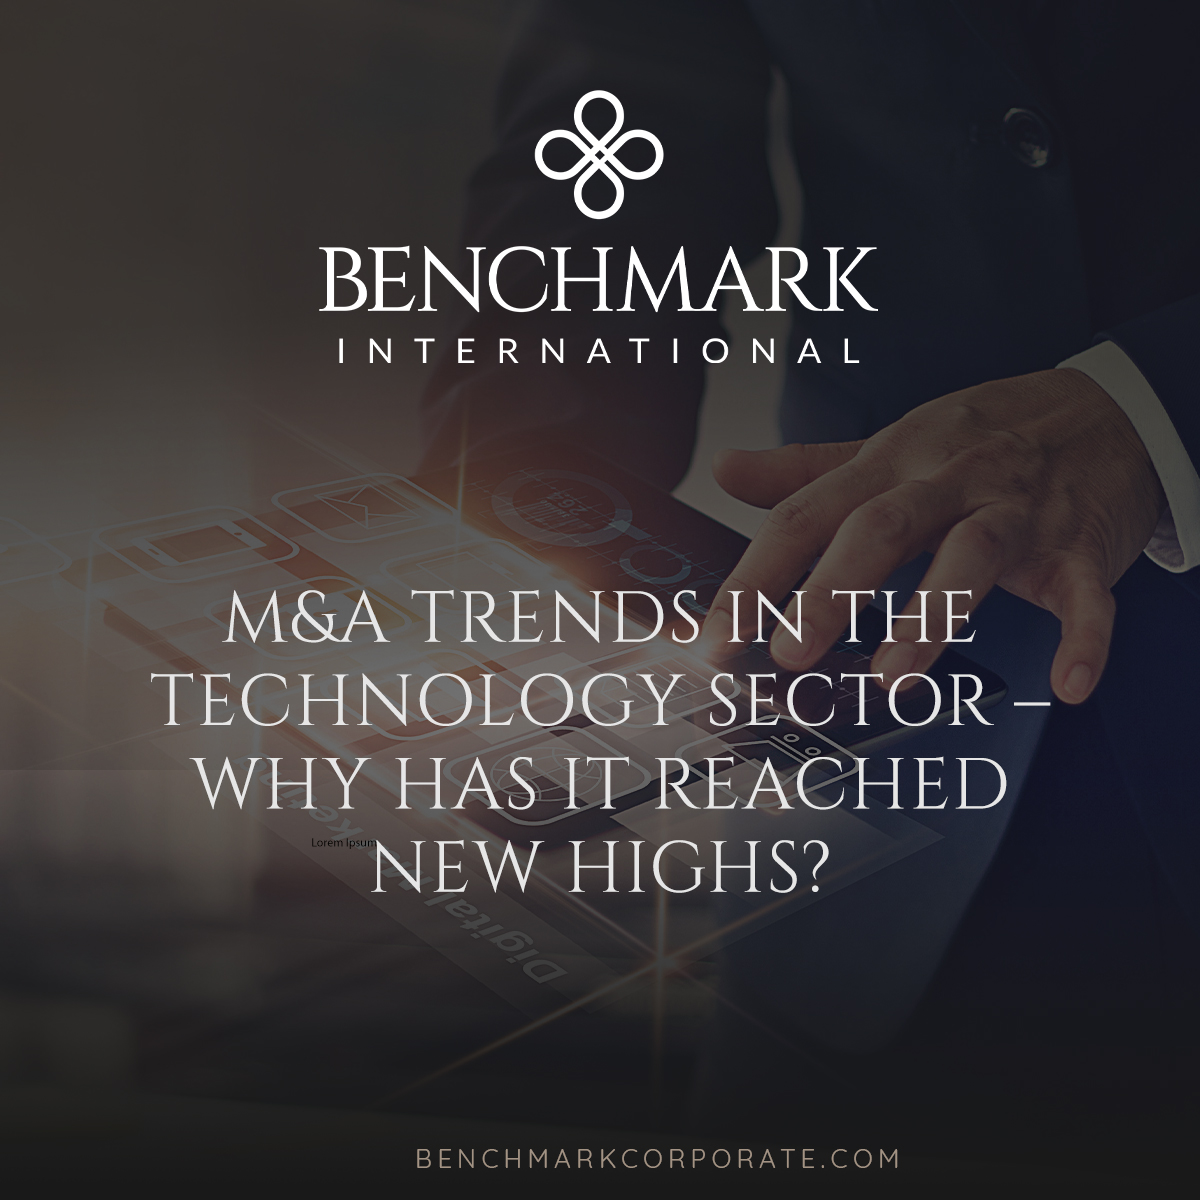 M&A Trends in the Tech Sector